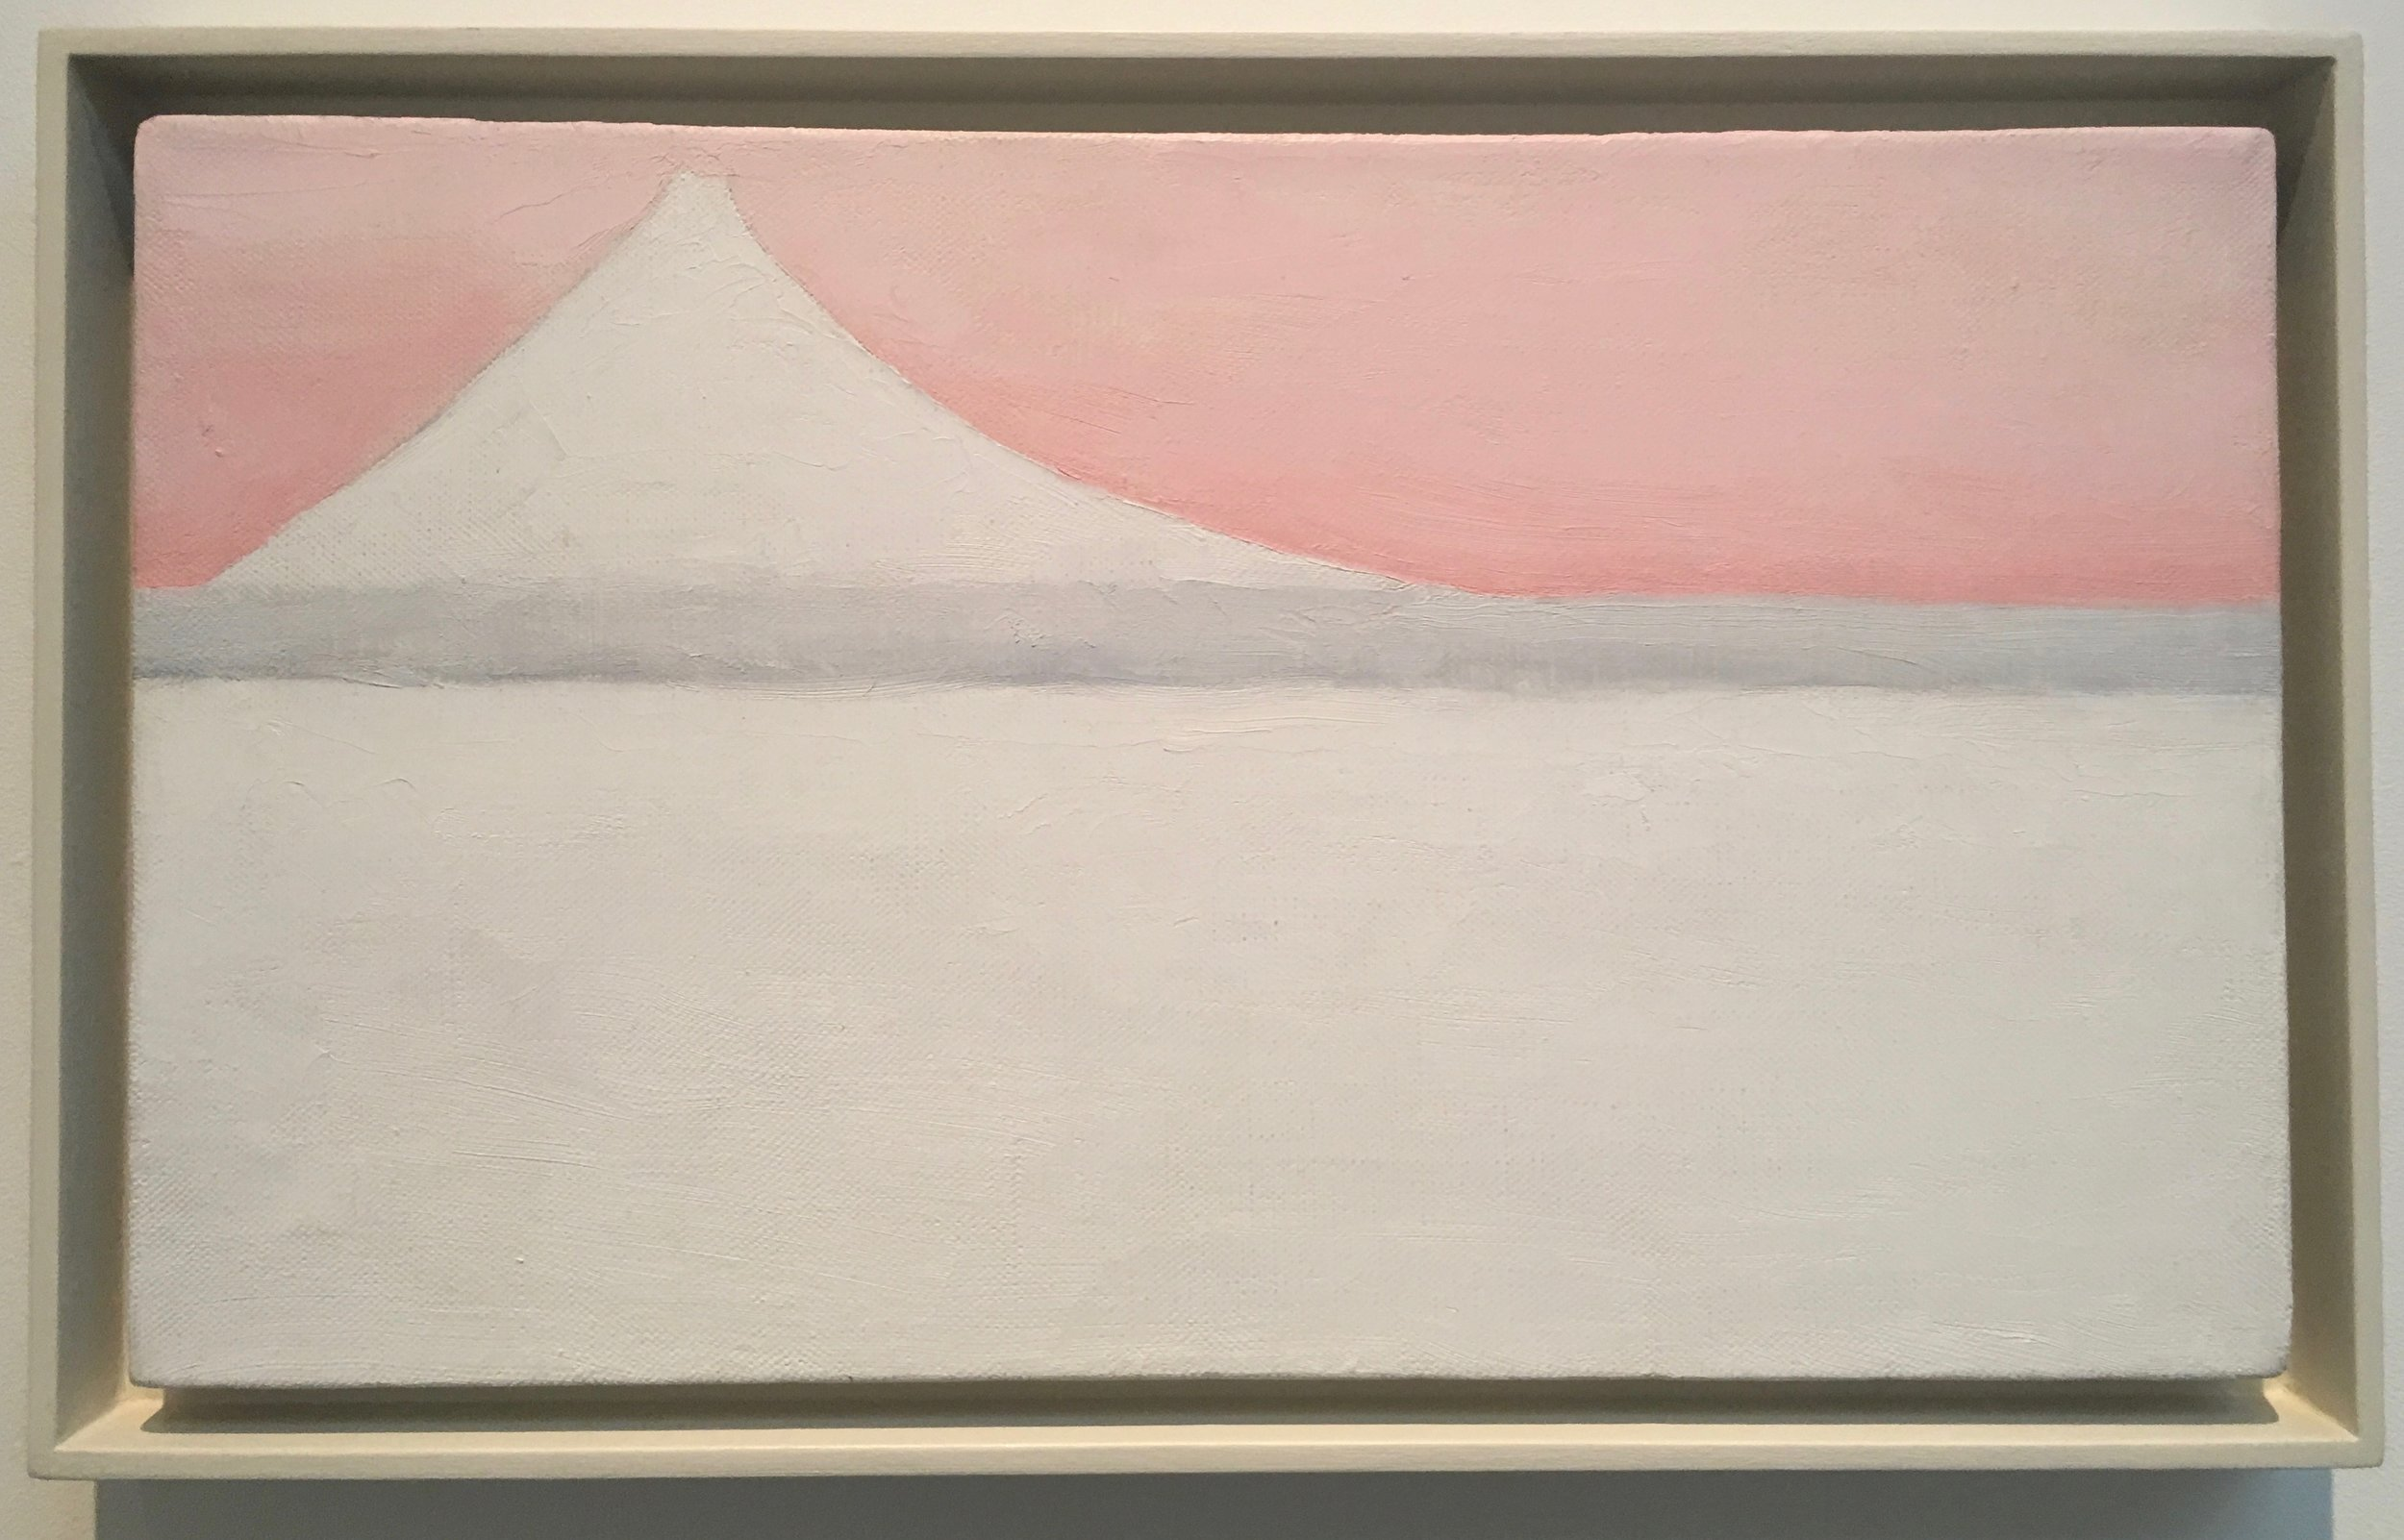 Georgia O'Keefe, Untitled (Mt. Fuji), 1960